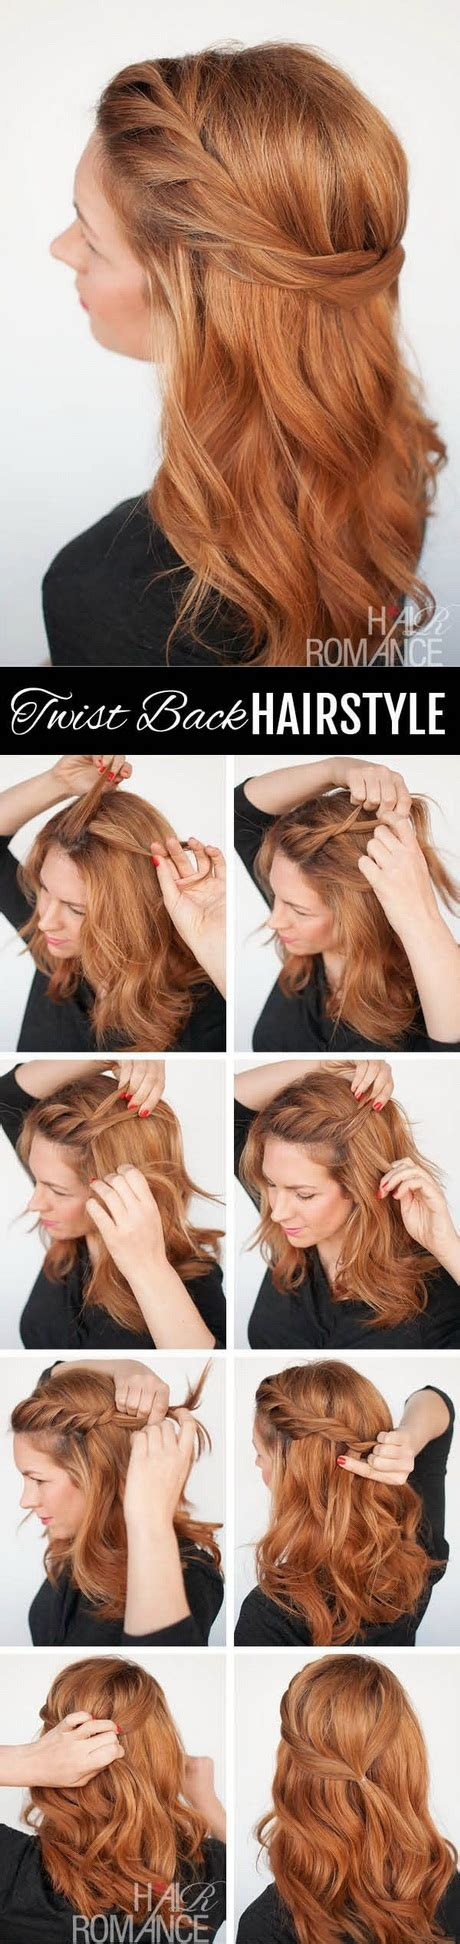 hairstyles for lazy women 7 hairstyles for lazy girls